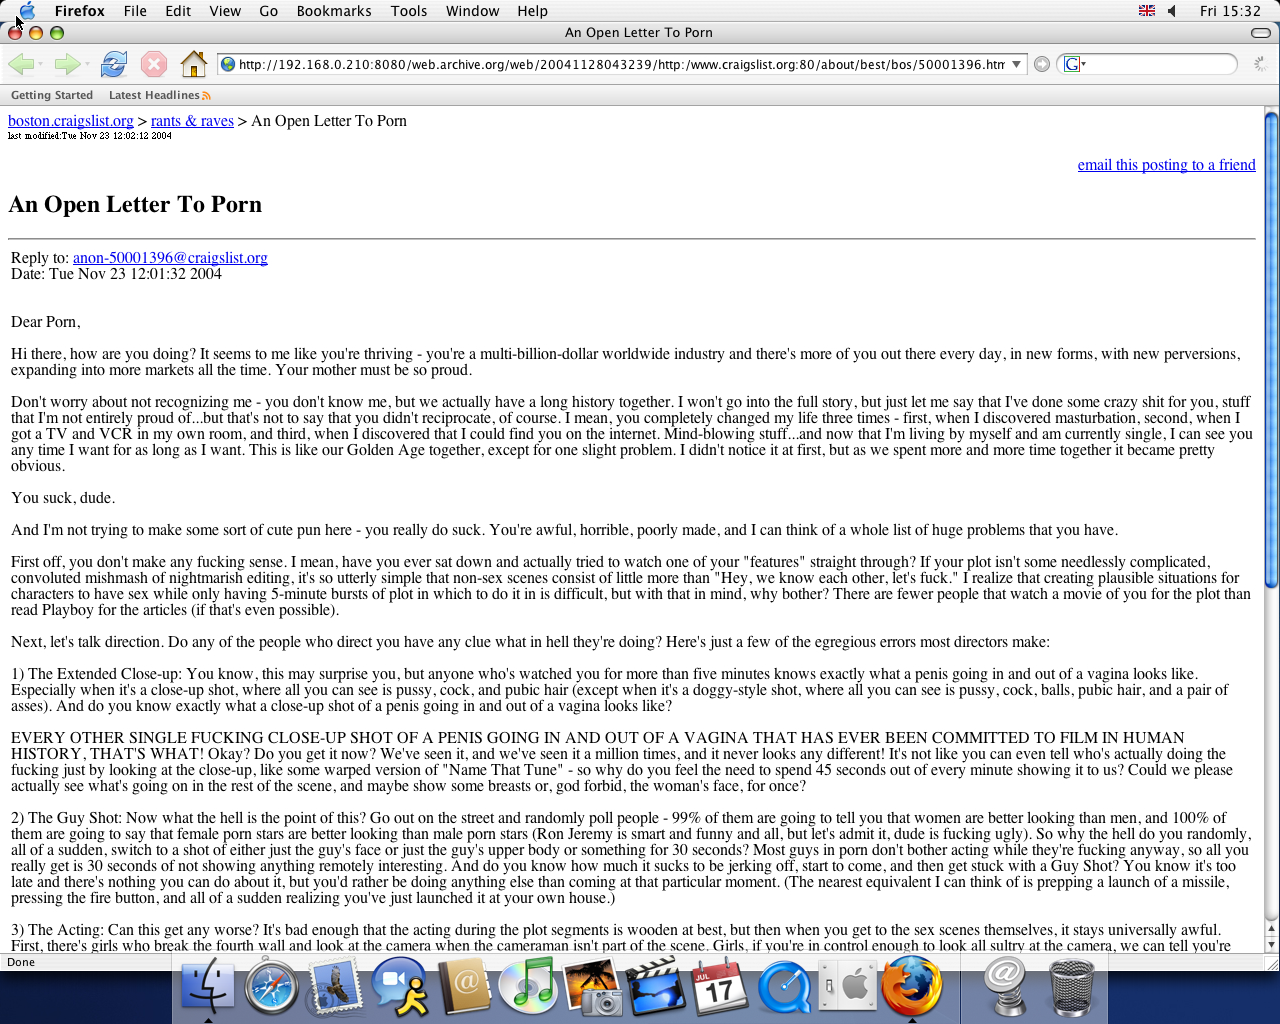 OS X 10.3 PPC with Mozilla Firefox 1.0 displaying a page from craigslist archived at November 28, 2004 at 04:32:39